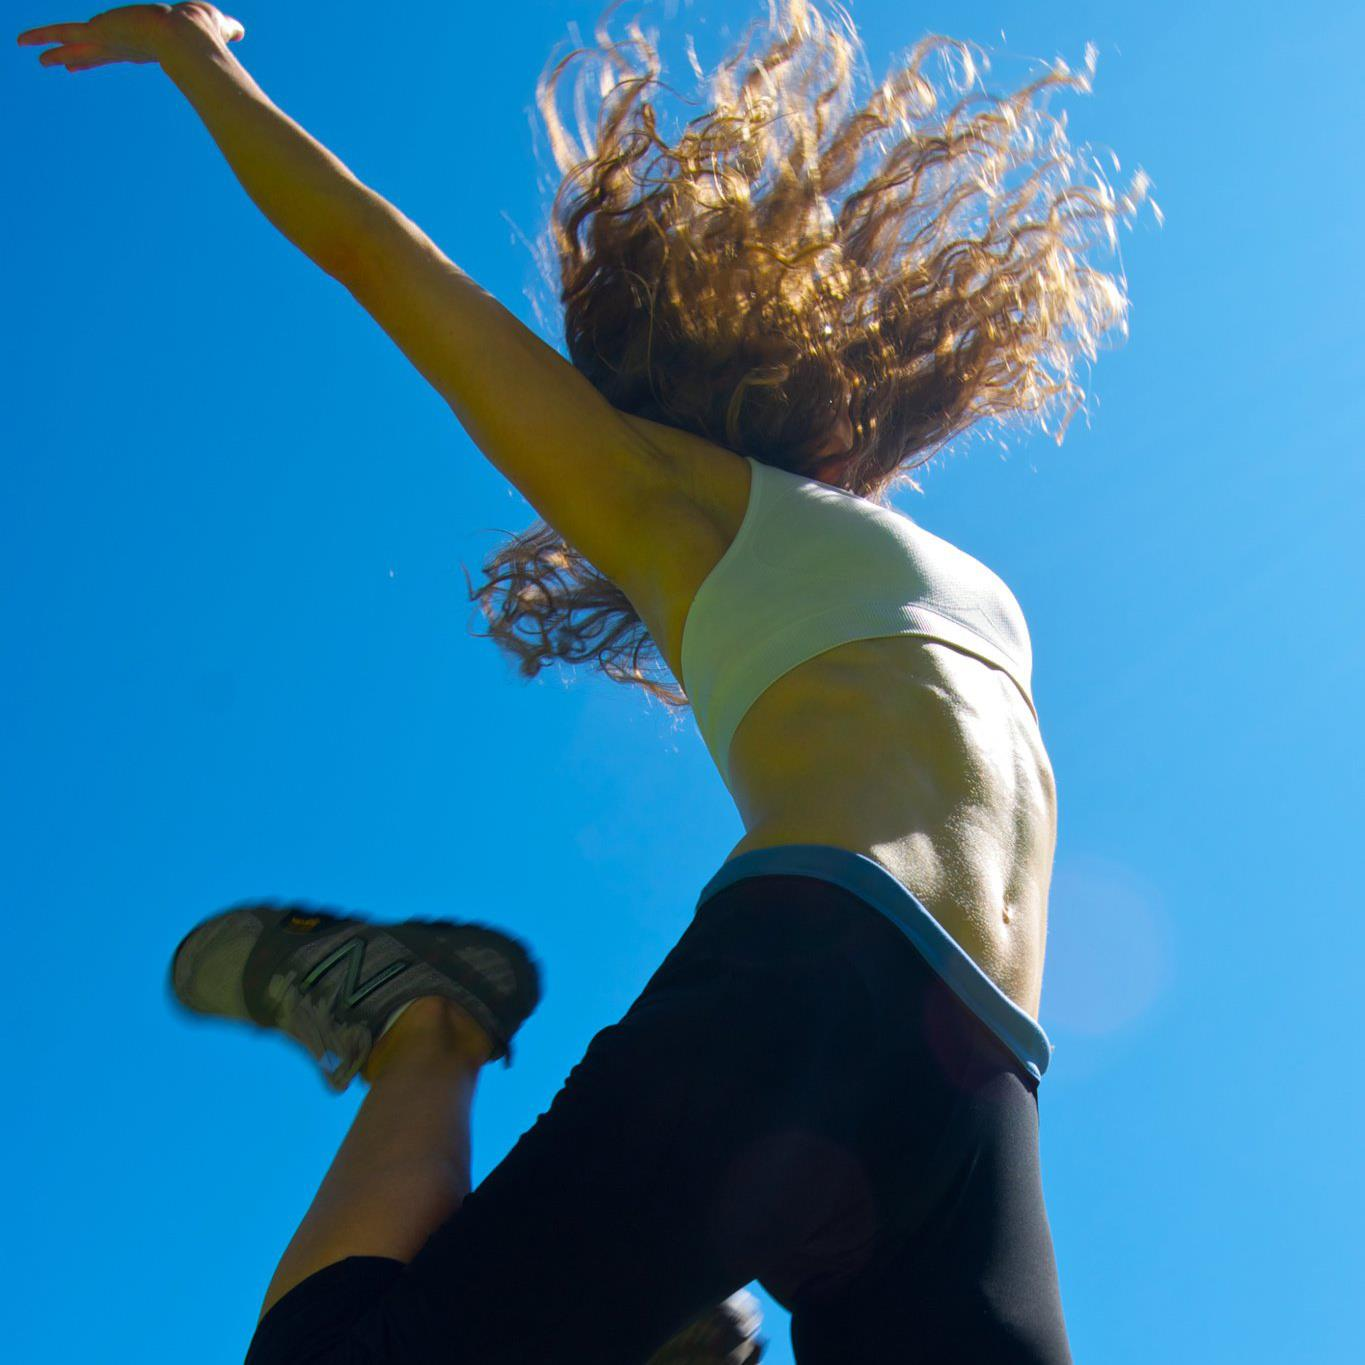 Author Kelly Byrne as Personal Trainer Jumping